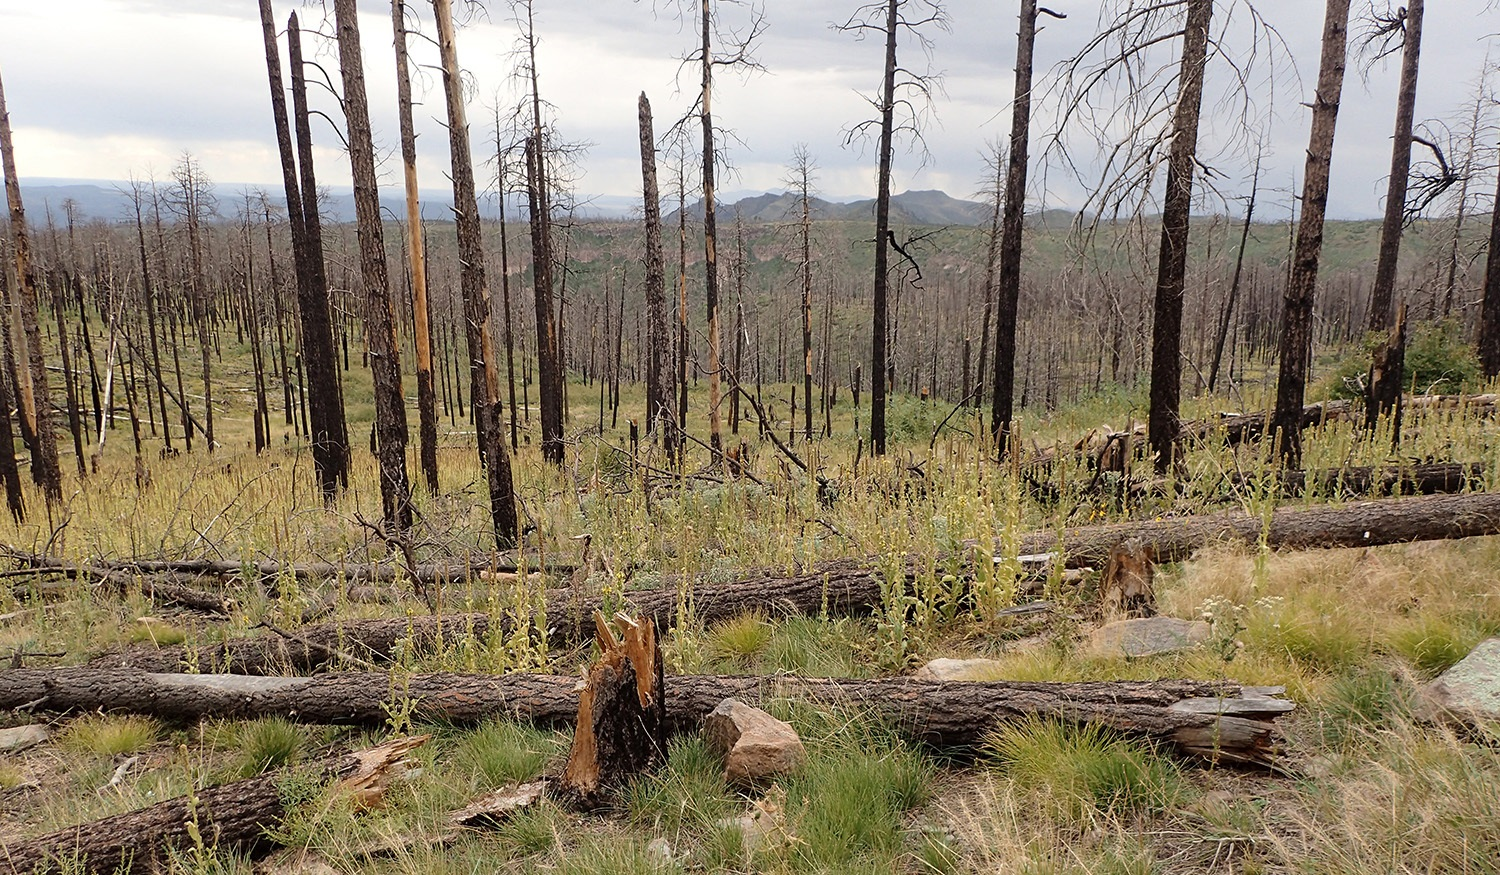 A stand of Ponderosa pines in New Mexico's Santa Fe National Forest recovers from the Las Conchas fire, which was at the time the largest wildfire in state history. [Photo courtesy of Western State Colorado University]